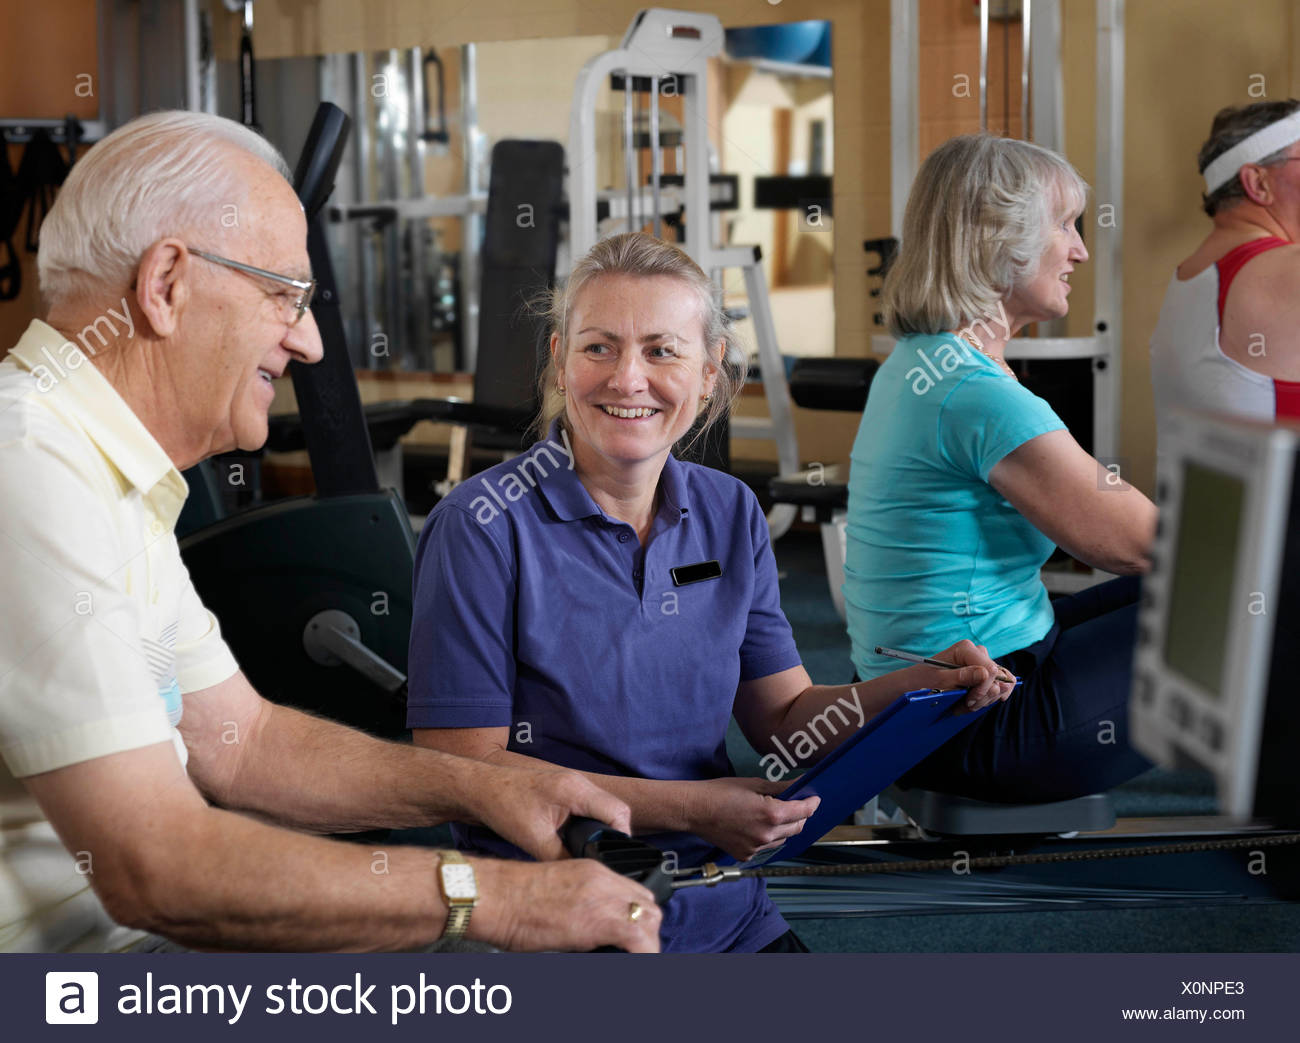 senior male at gym with instructor - Stock Image